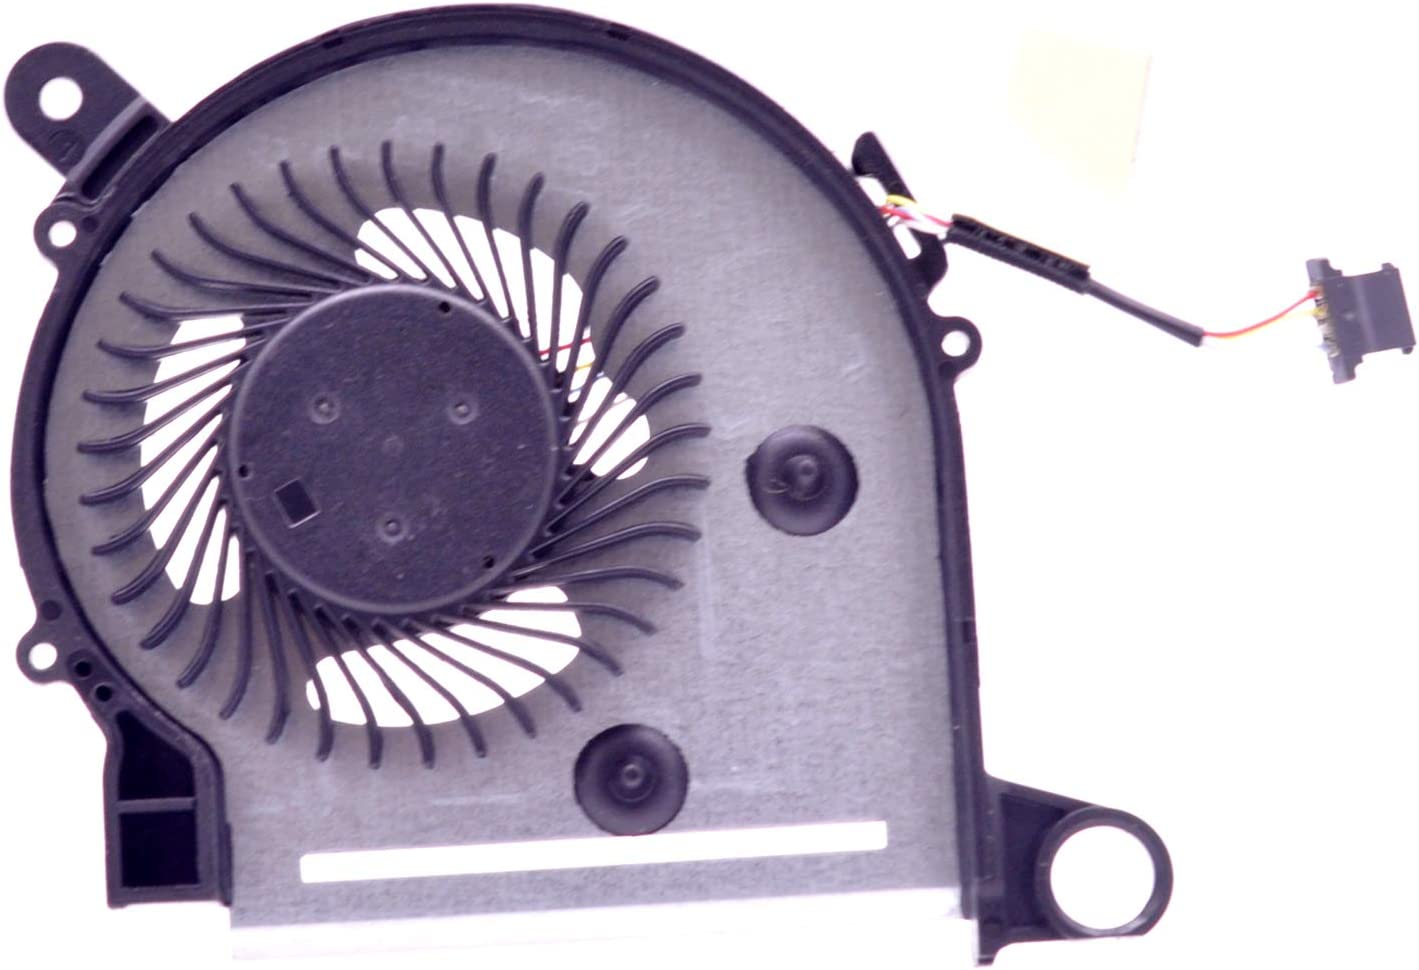 PartEGG CPU Cooling Fan Replacement for HP Pavilion X360 13-U 13T-U M3-U 13-U000 13-U100 14-AMxxxTU 13-U000TU M3-U103DX M3-U105DX 855966-001